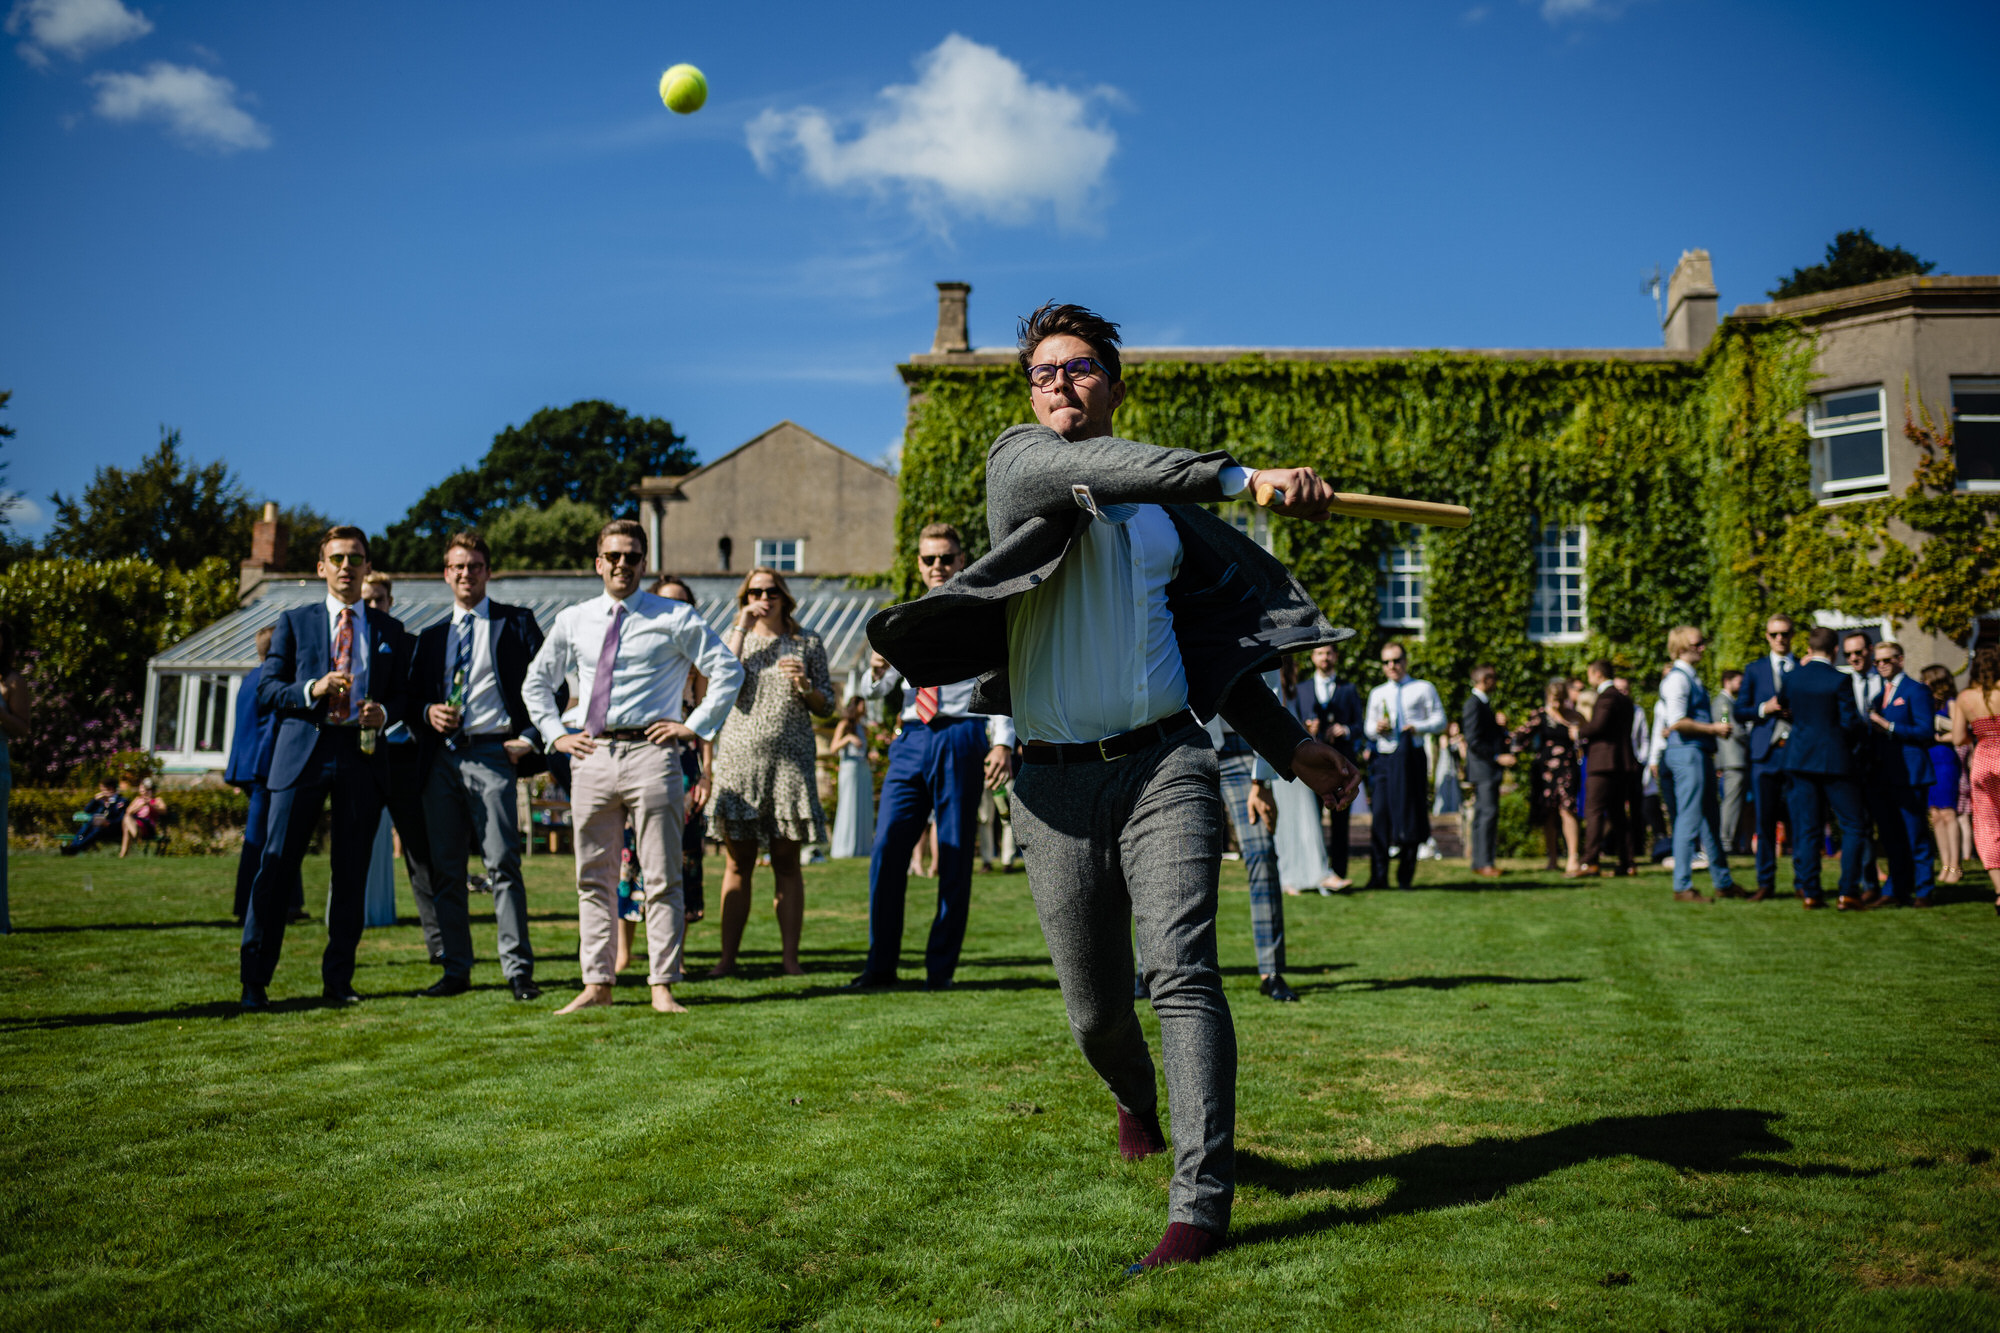 Rounders at wedding